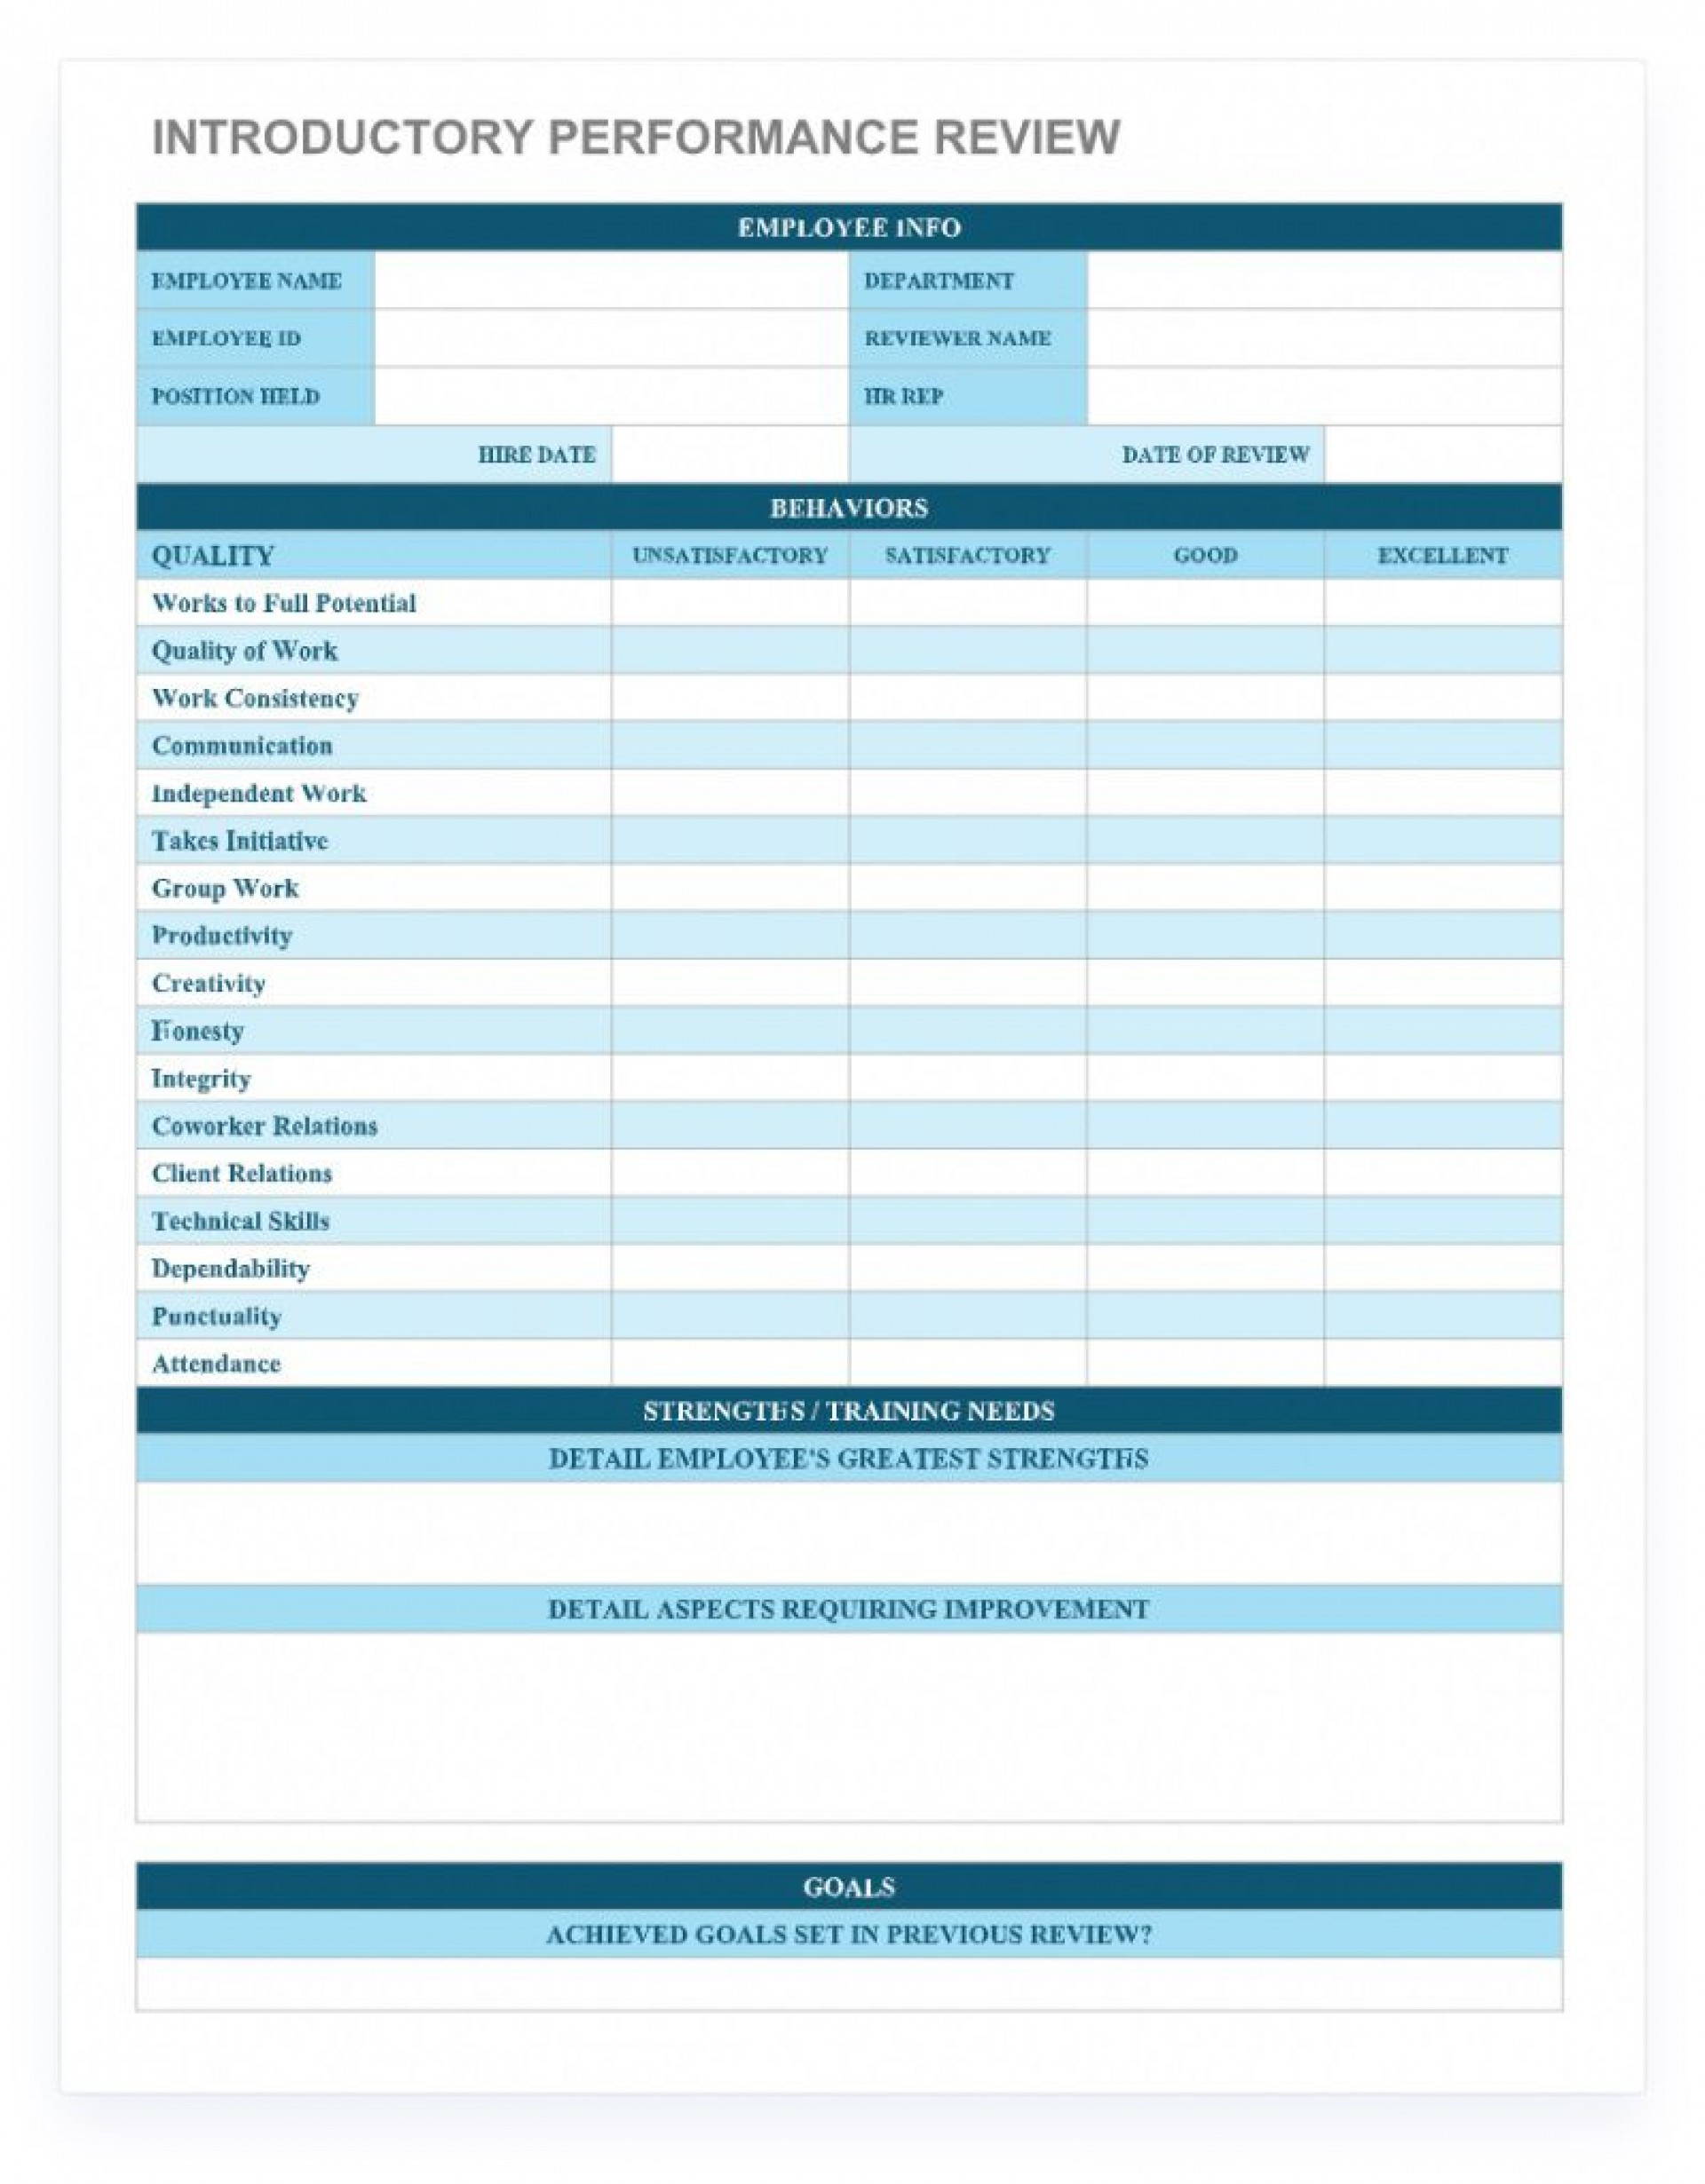 90 Day Performance Review Template Addictionary